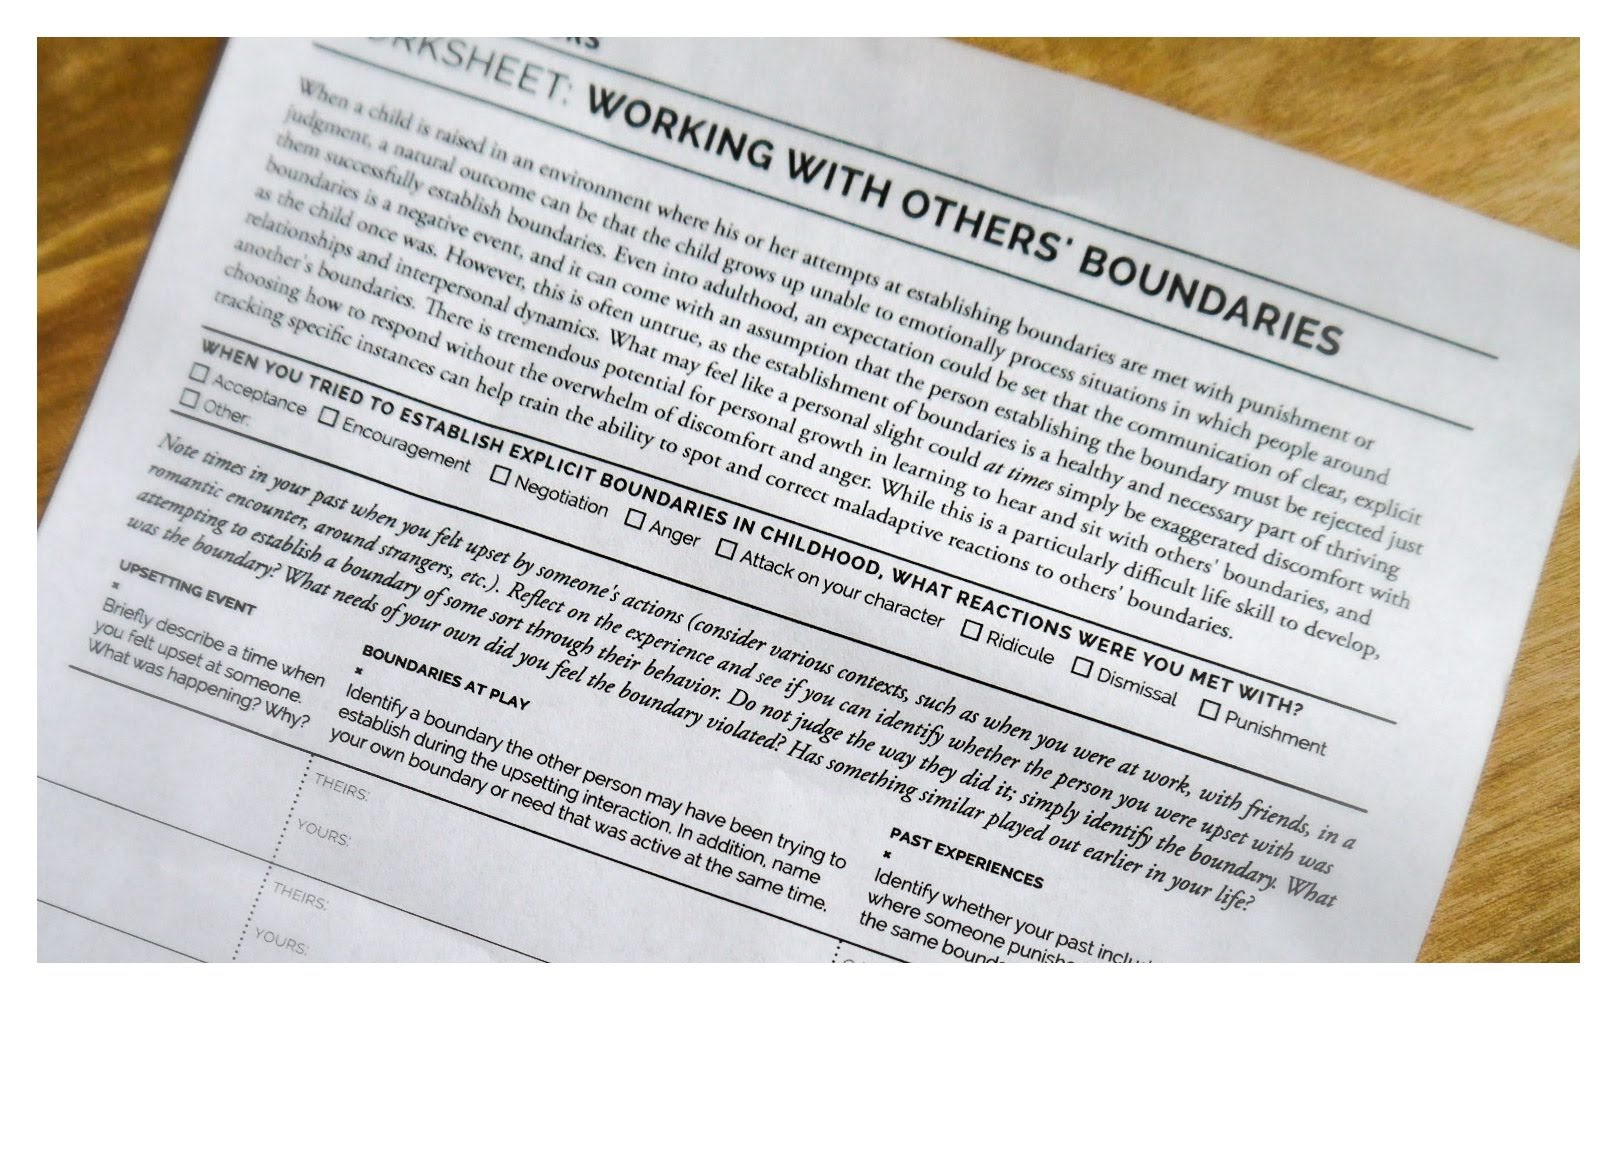 Working With Others Boundaries V1 0